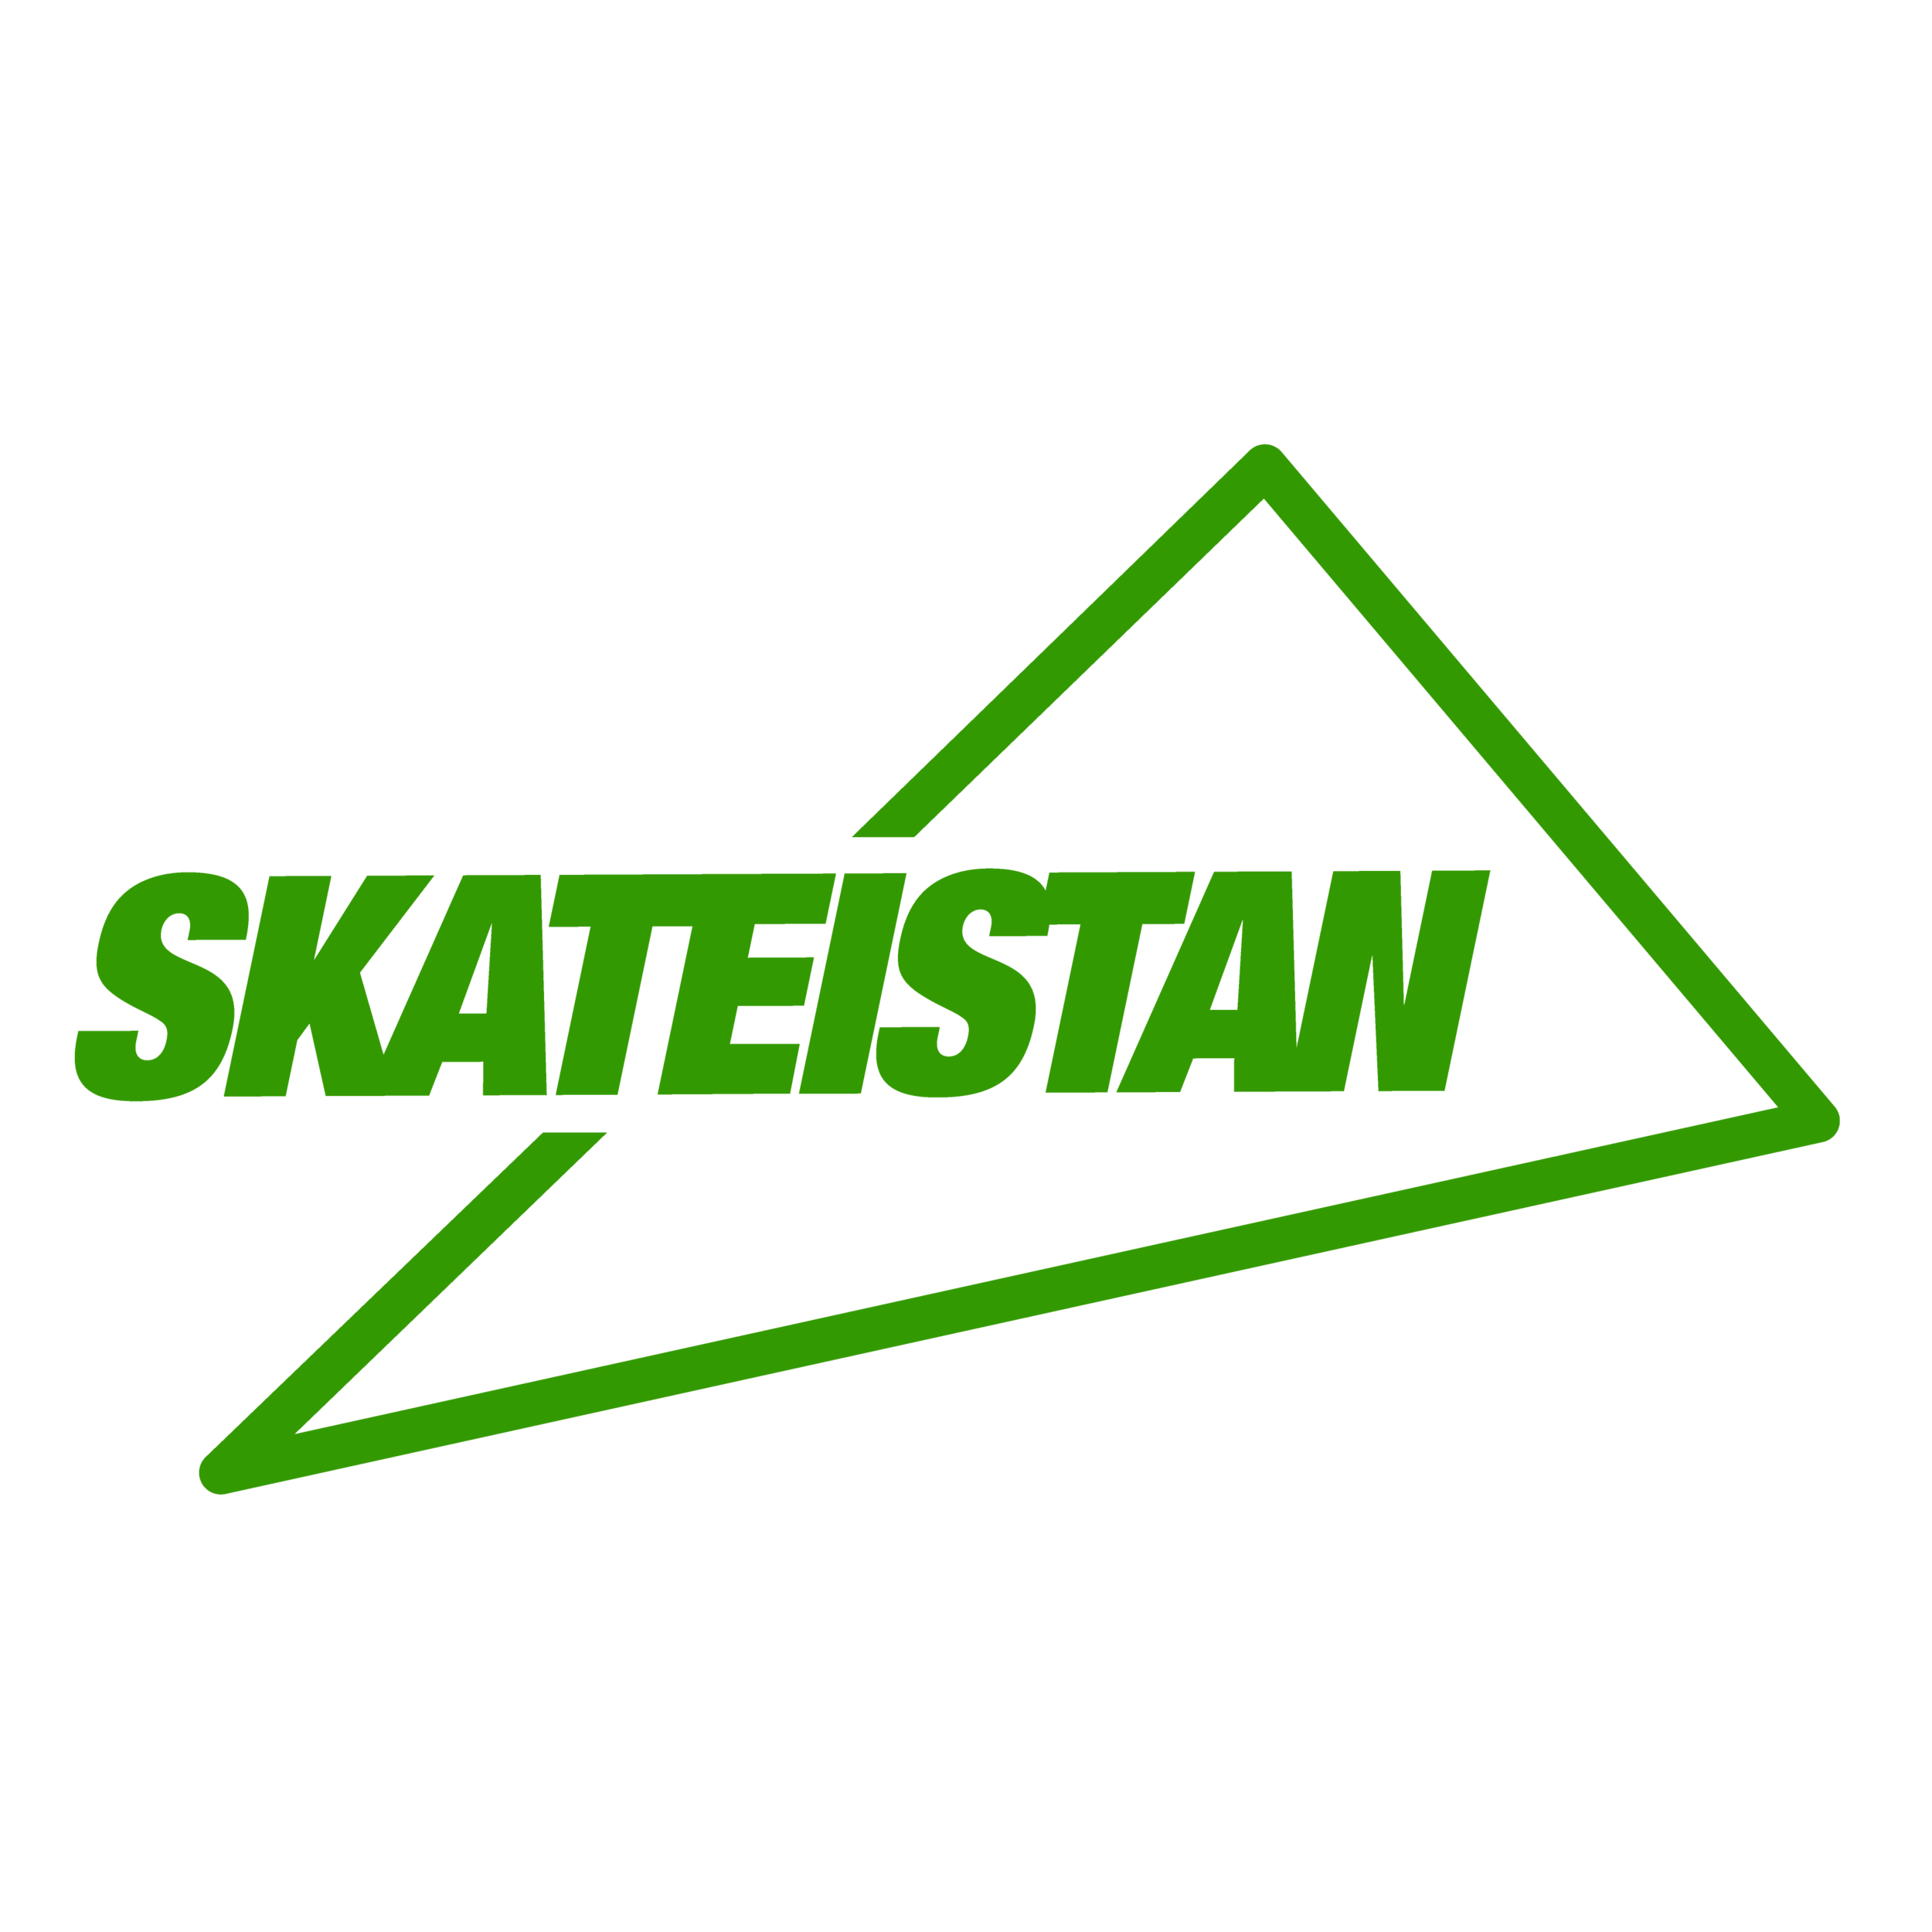 Skateistan_Triangle_Green.png